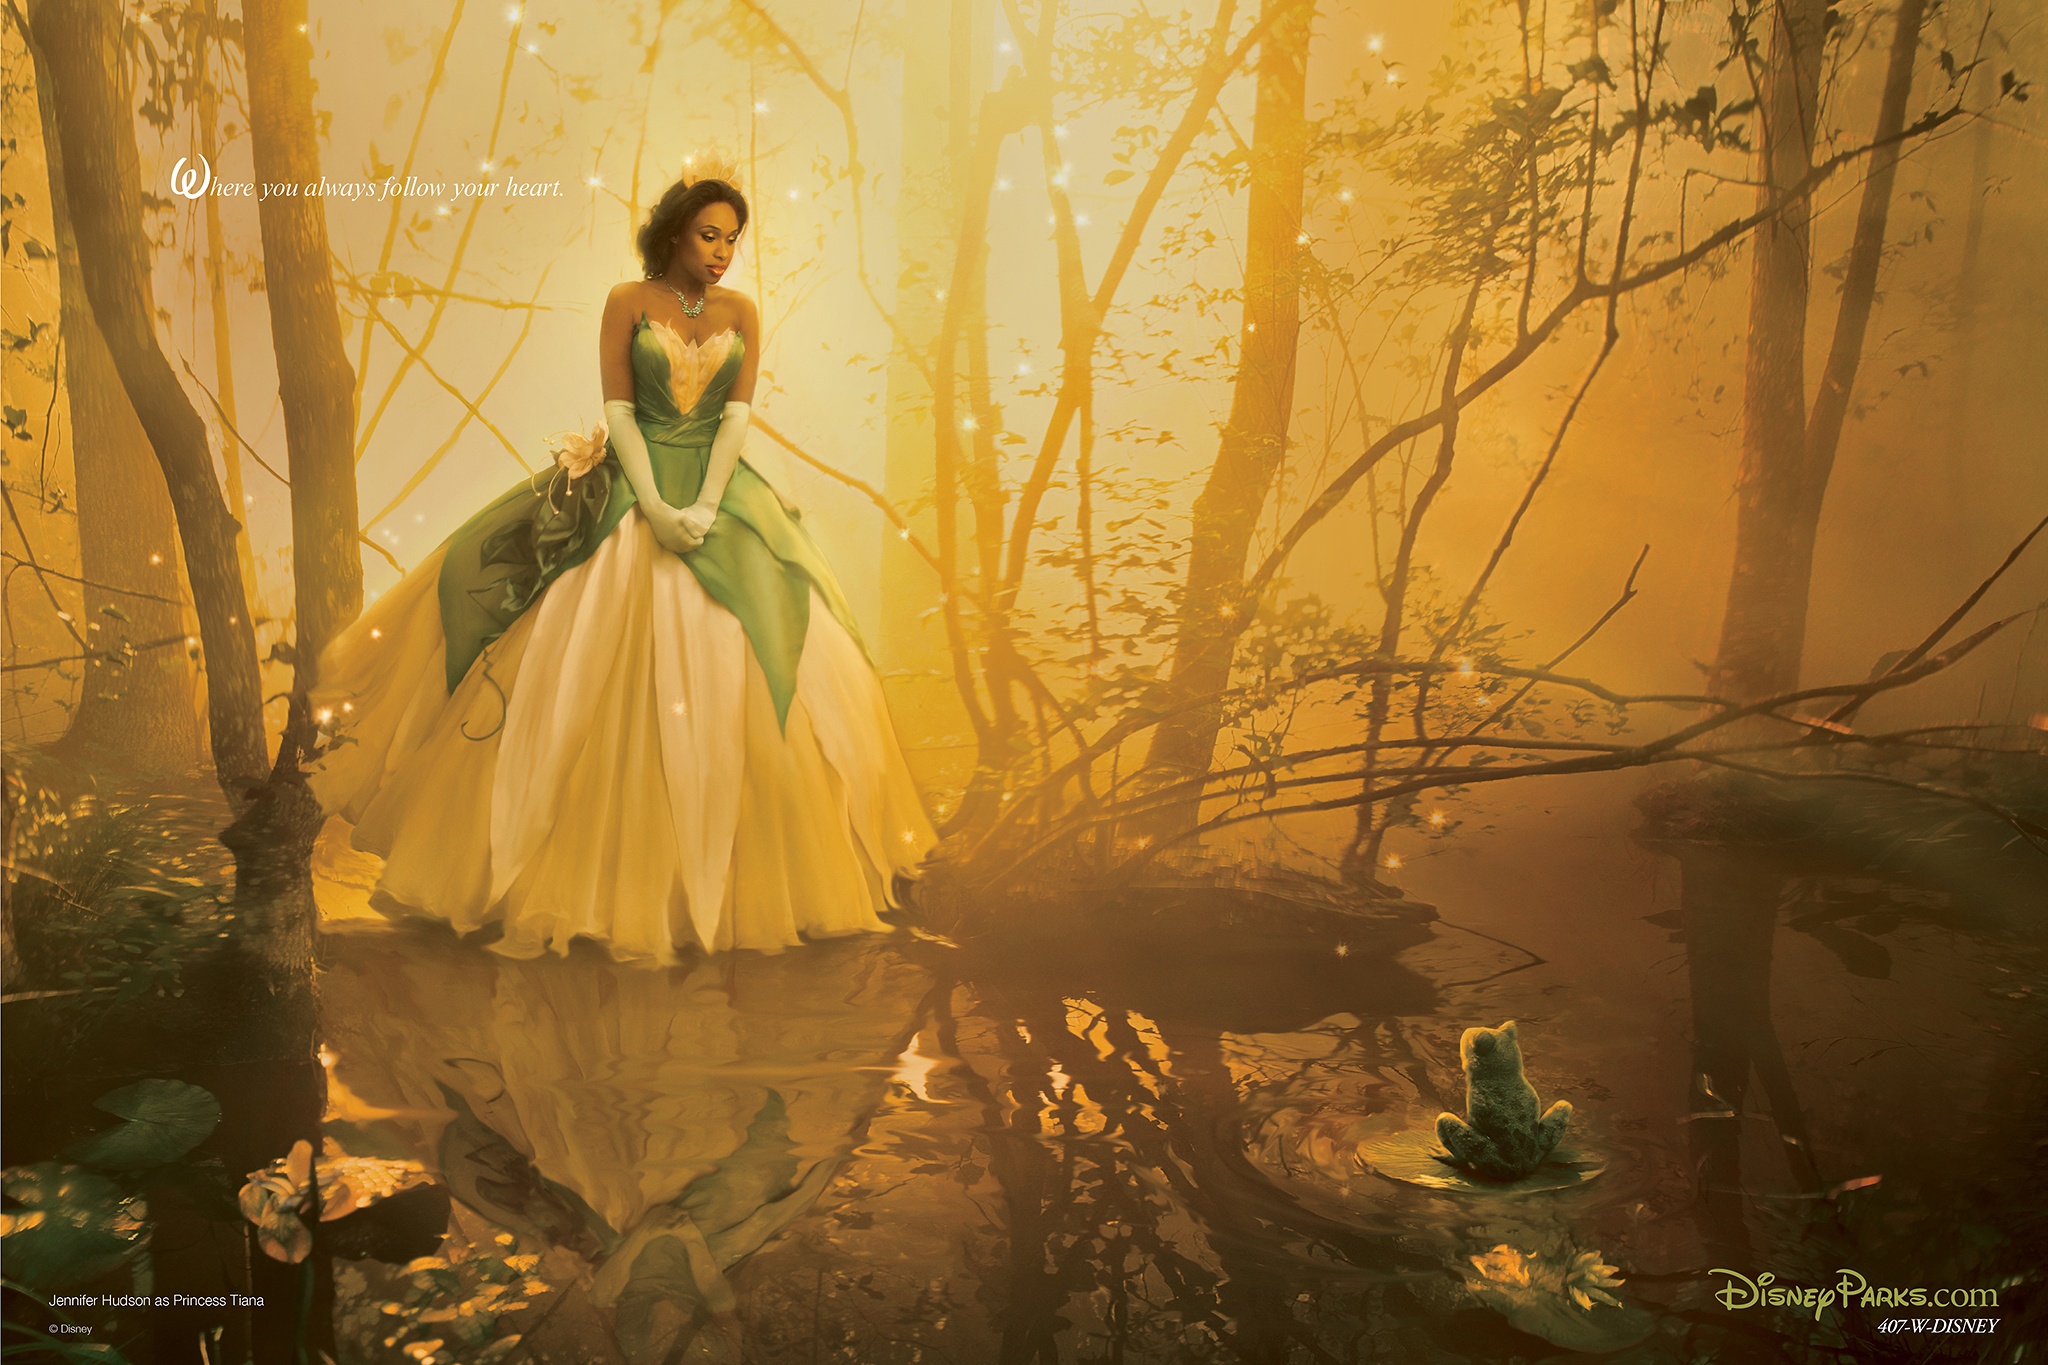 Click image for large version (Photo: Annie Leibovitz for Disney Parks)